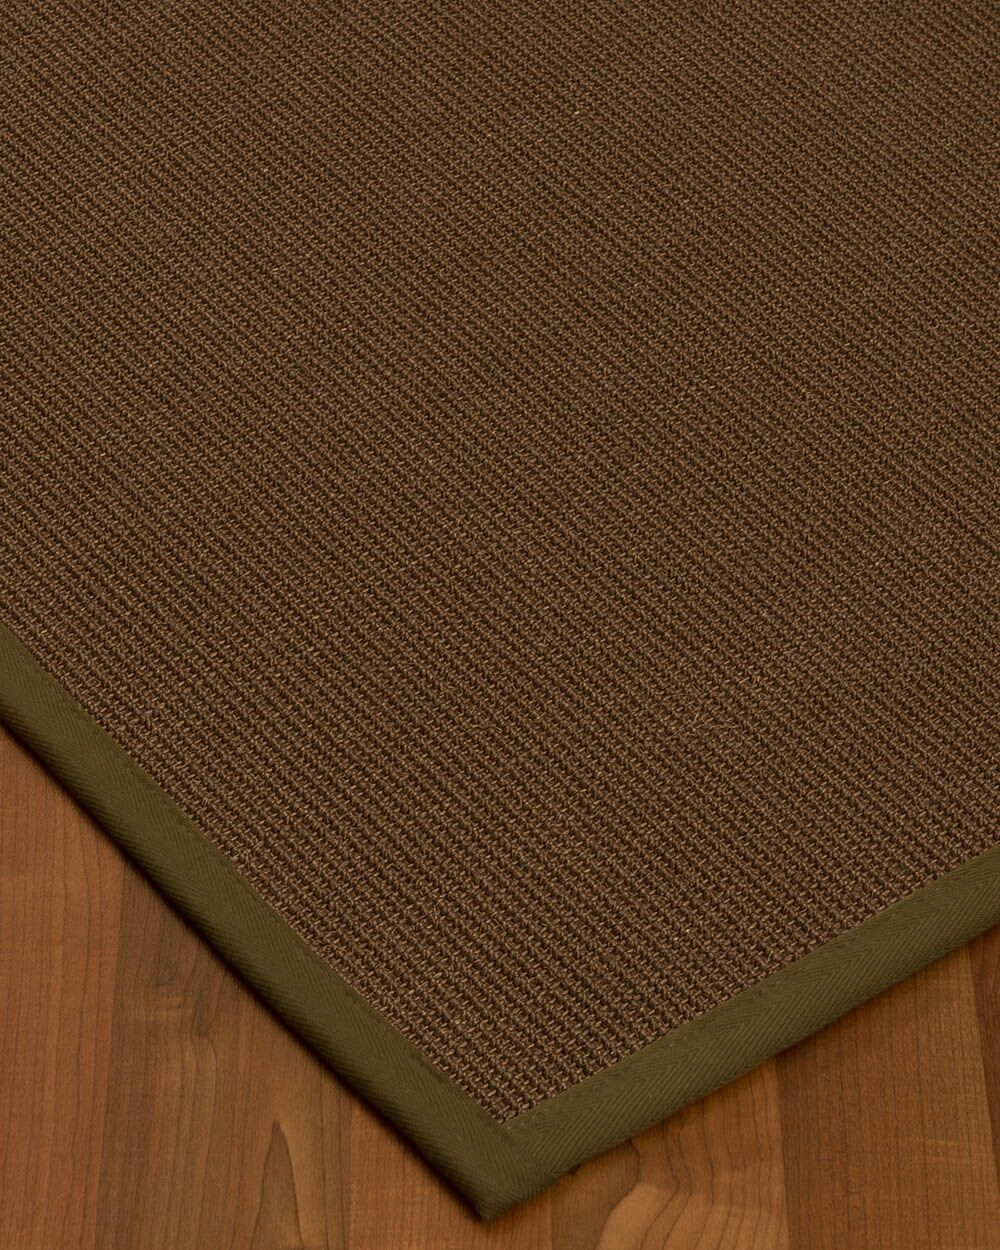 Heider Border Hand-Woven Brown/Malt Area Rug Rug Size: Rectangle 8' x 10', Rug Pad Included: Yes